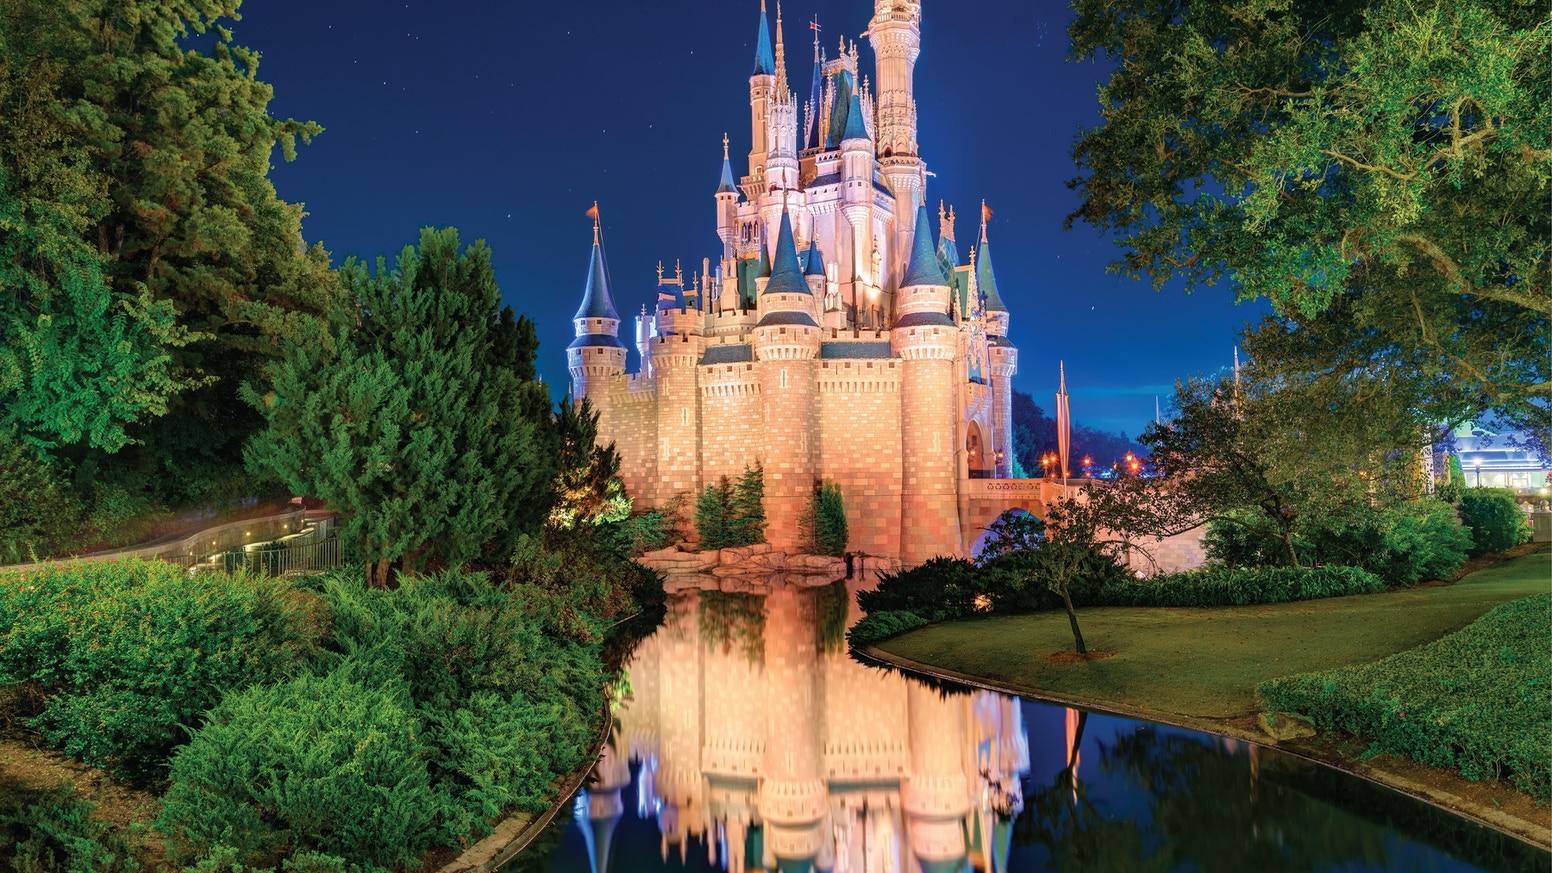 The Best of WDW - Volume 1 - take a photo tour the Theme Parks at Walt Disney World in Orlando, Florida. Over 250 Stunning Photos.